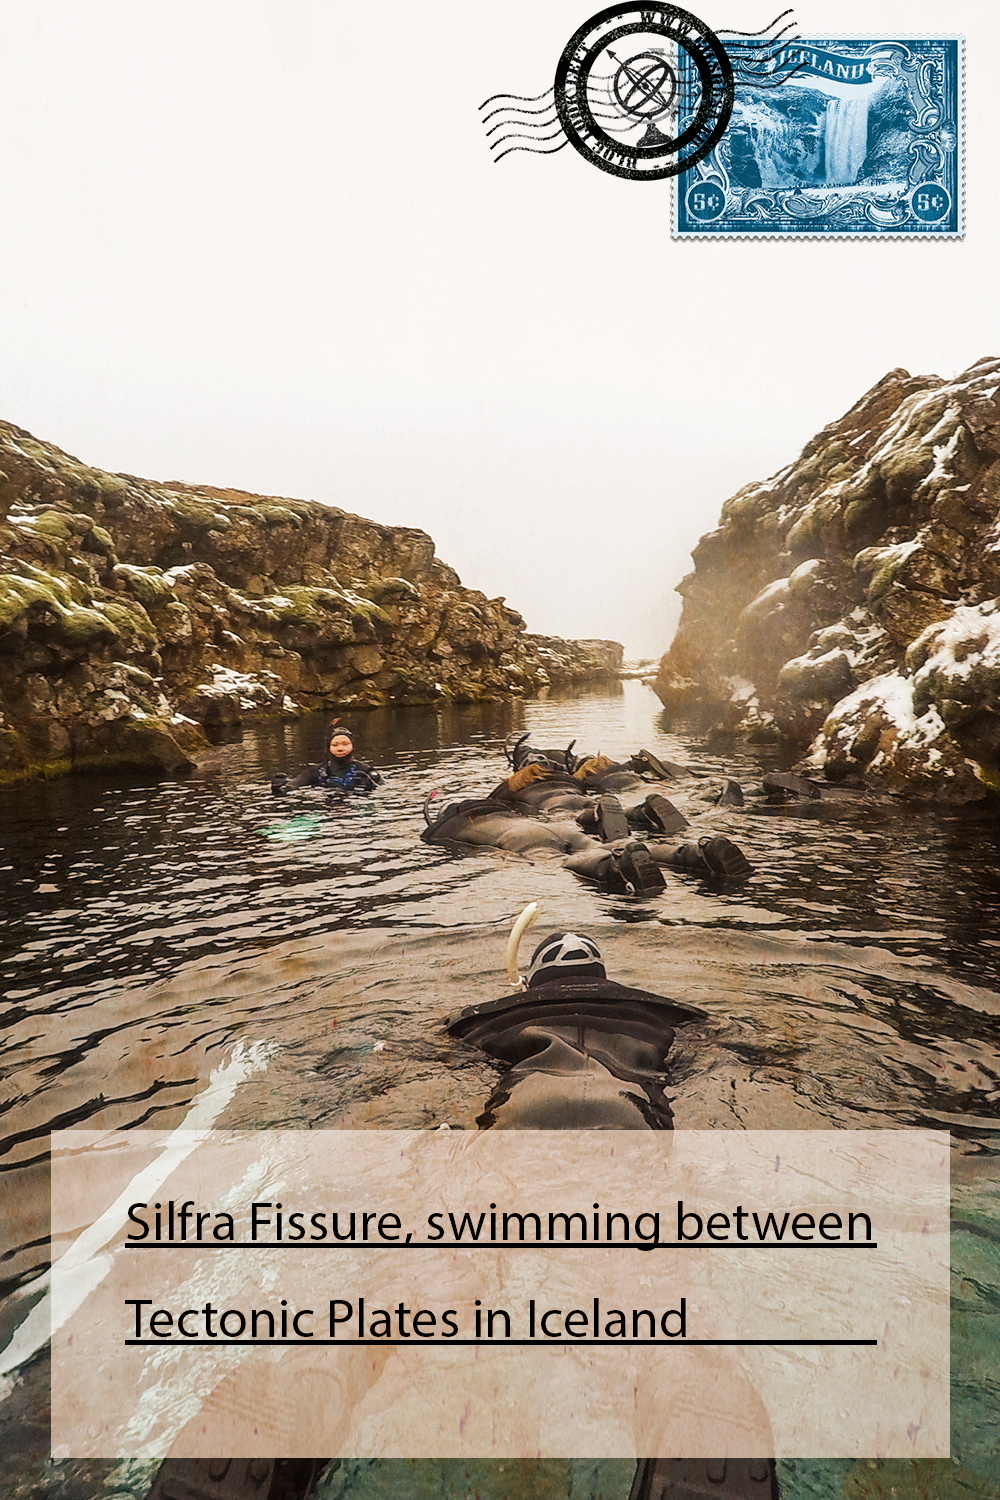 Silfra Fissure, swimming between Tectonic Plates in Iceland